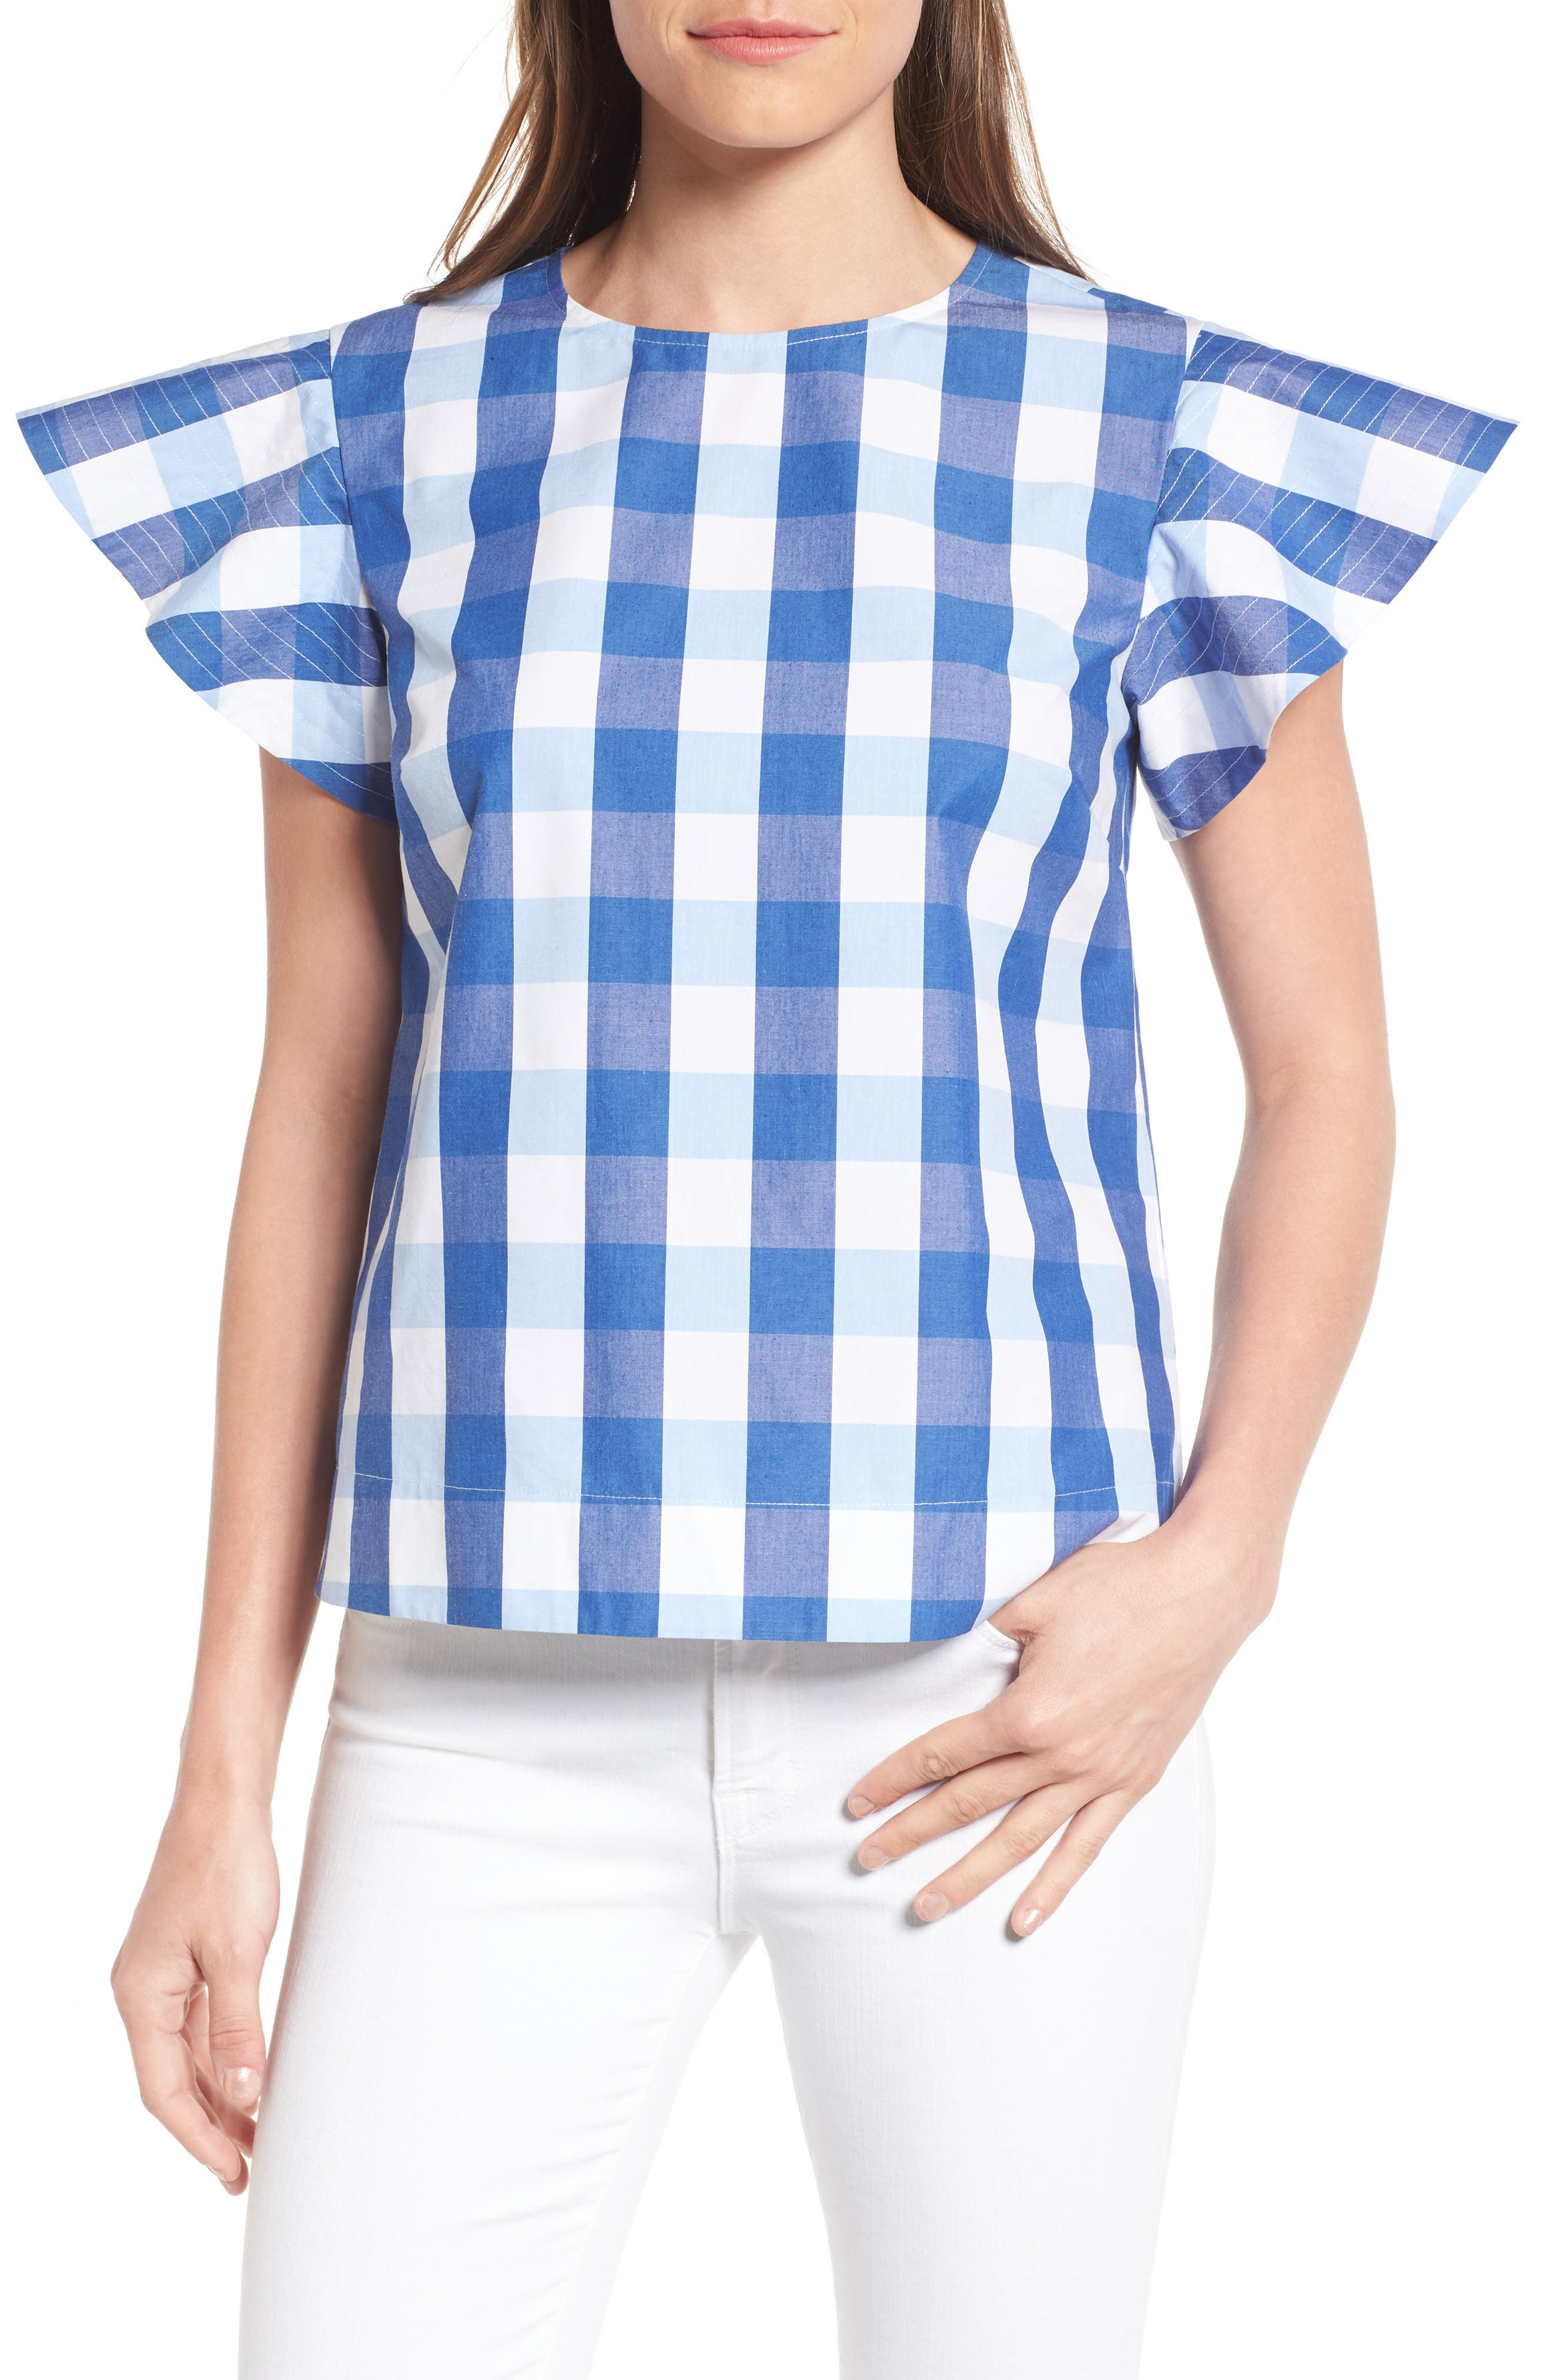 Cloister Gingham Cotton Top, Main, color, 400